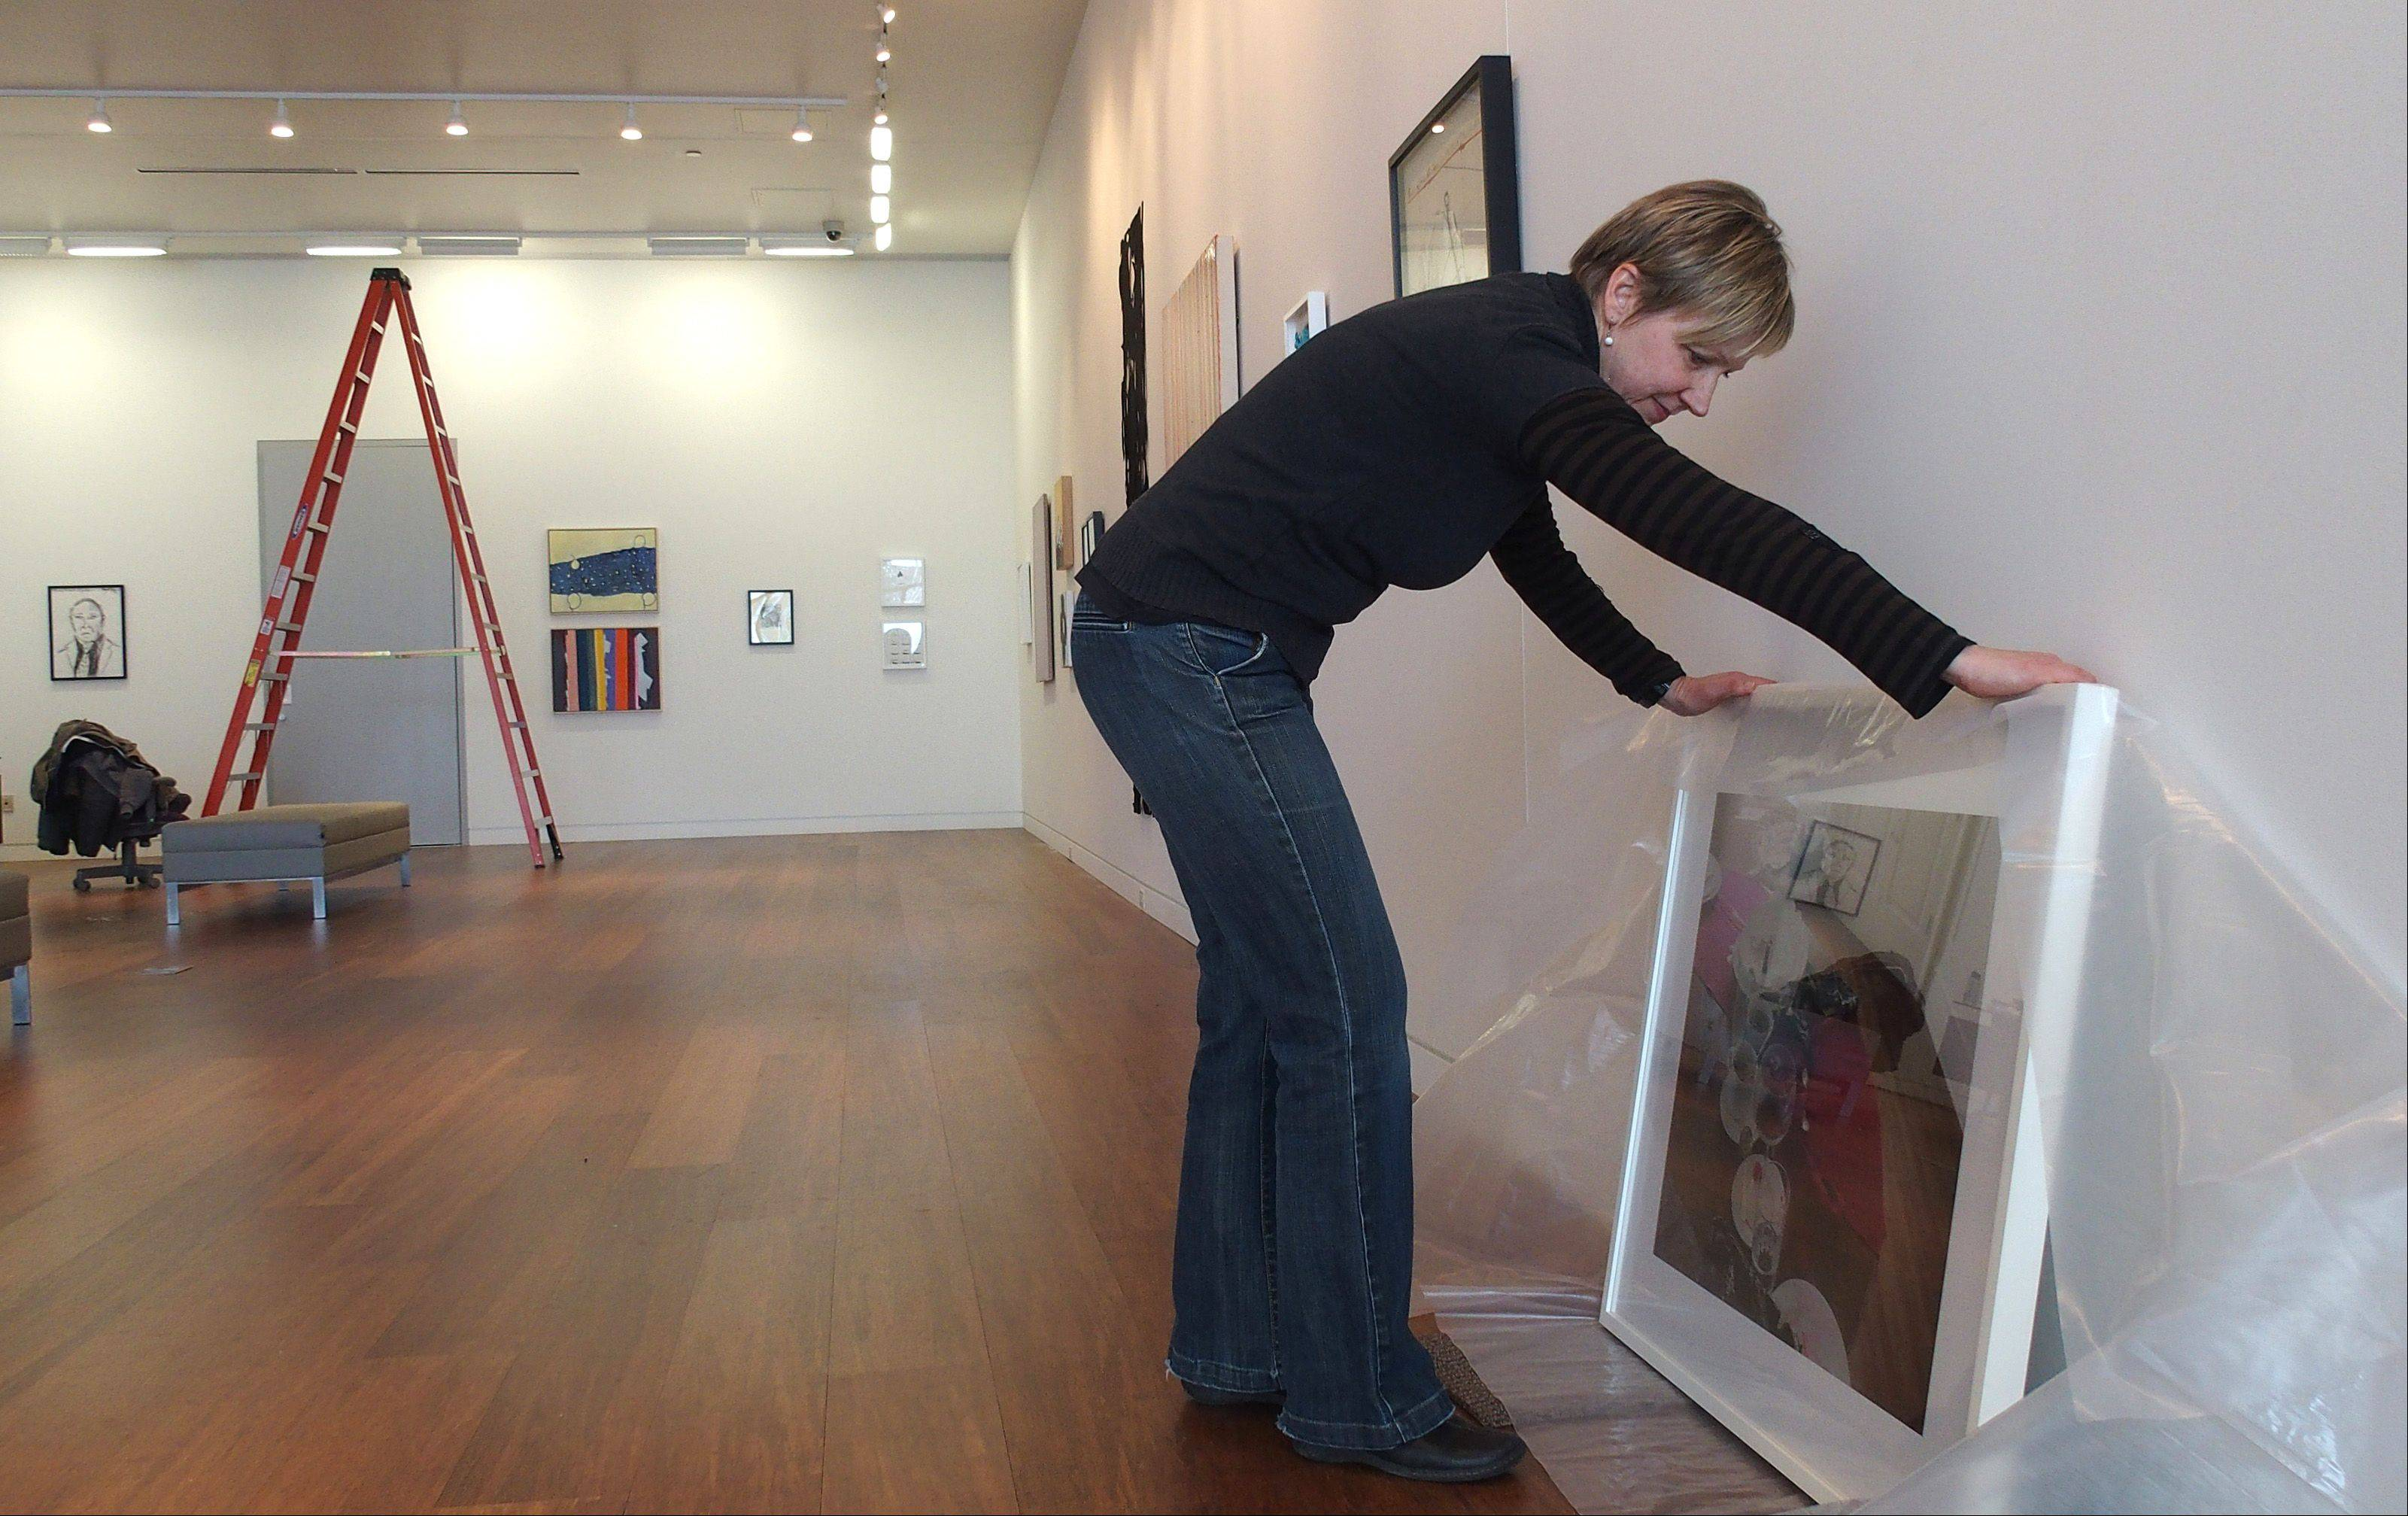 Curator Barb Wiesen prepares a painting for hanging Wednesday at the new Cleve Carney Art Gallery at the College of DuPage. The initial exhibition will feature works from the collection of the gallery's namesake, a businessman and art lover from Wheaton.